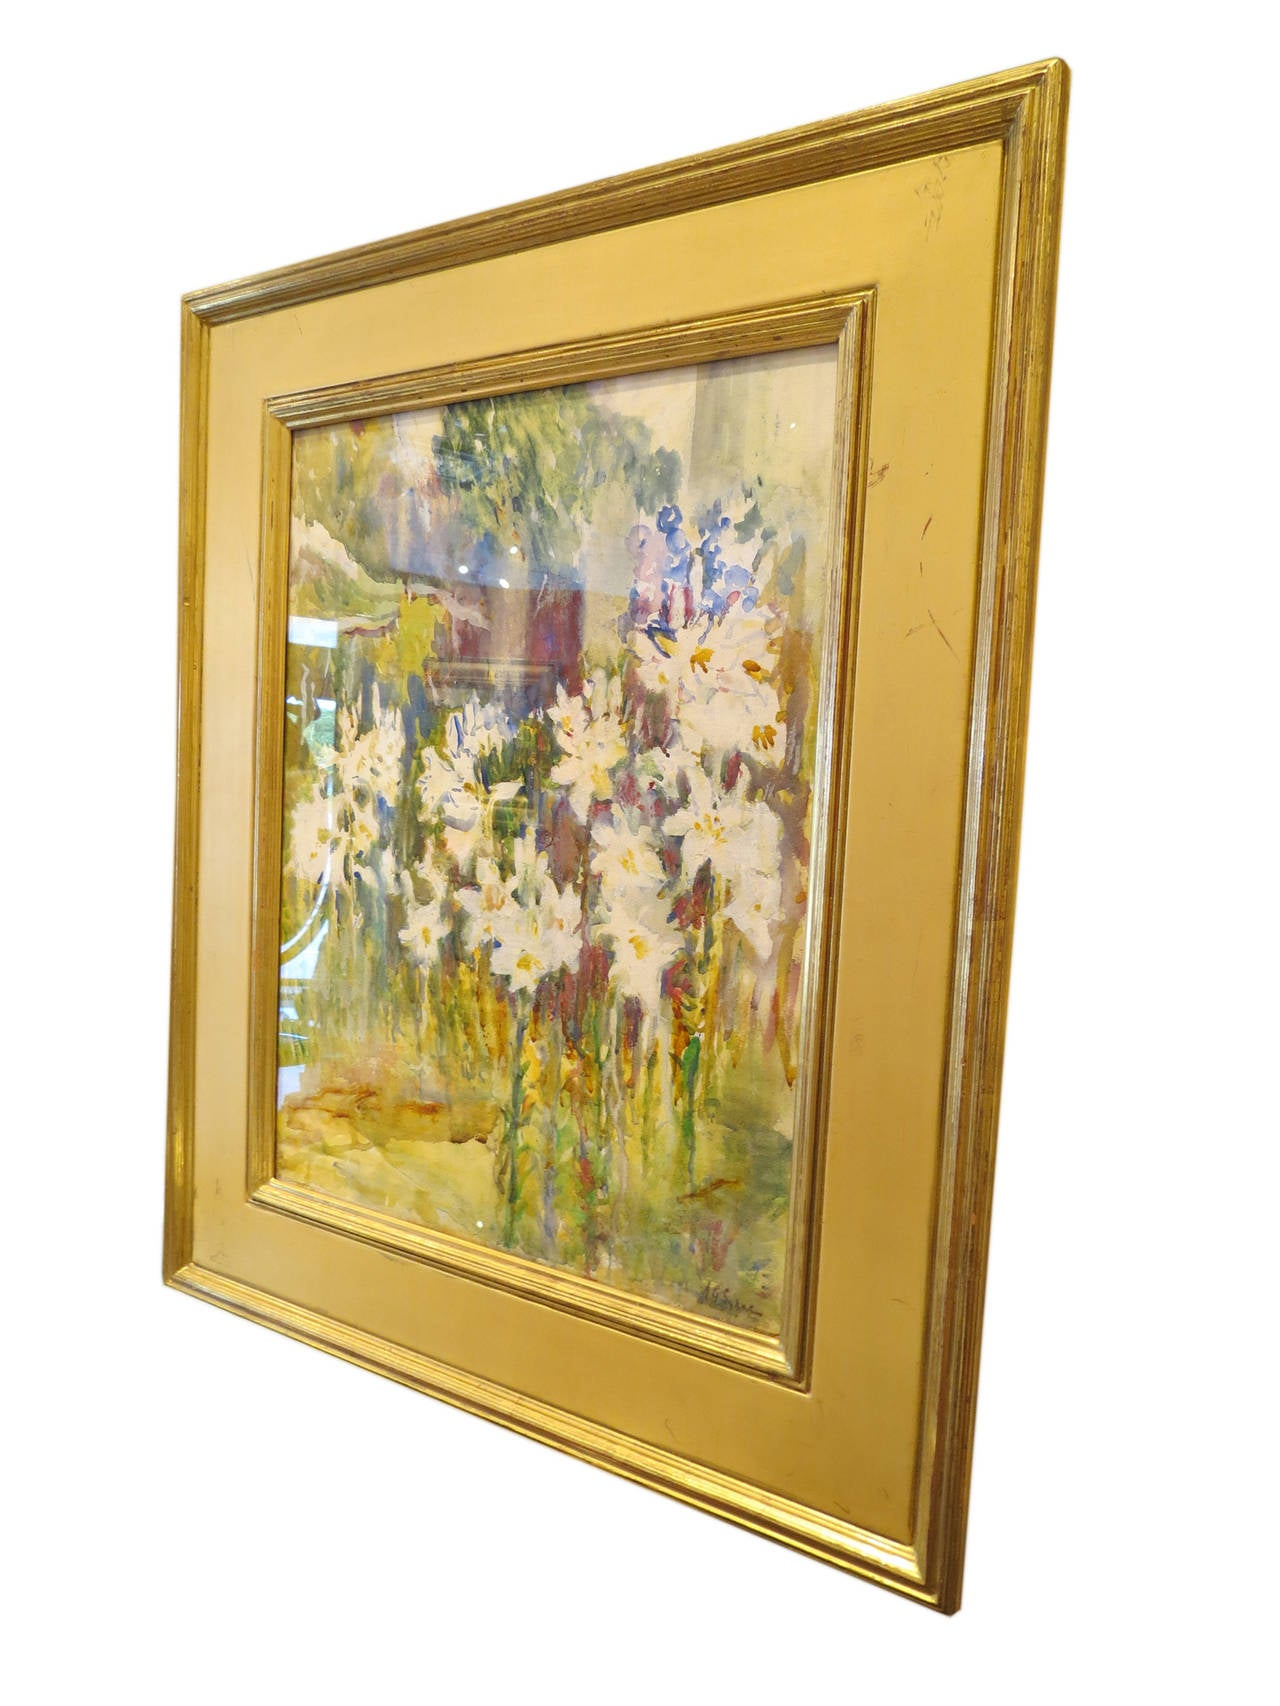 One of several prominent women associated with the artistic life of Cincinnati at the turn of the century, Annie G. Sykes was recognized for her colorful, Impressionist-inspired watercolors. Throughout her long and successful career, she explored a